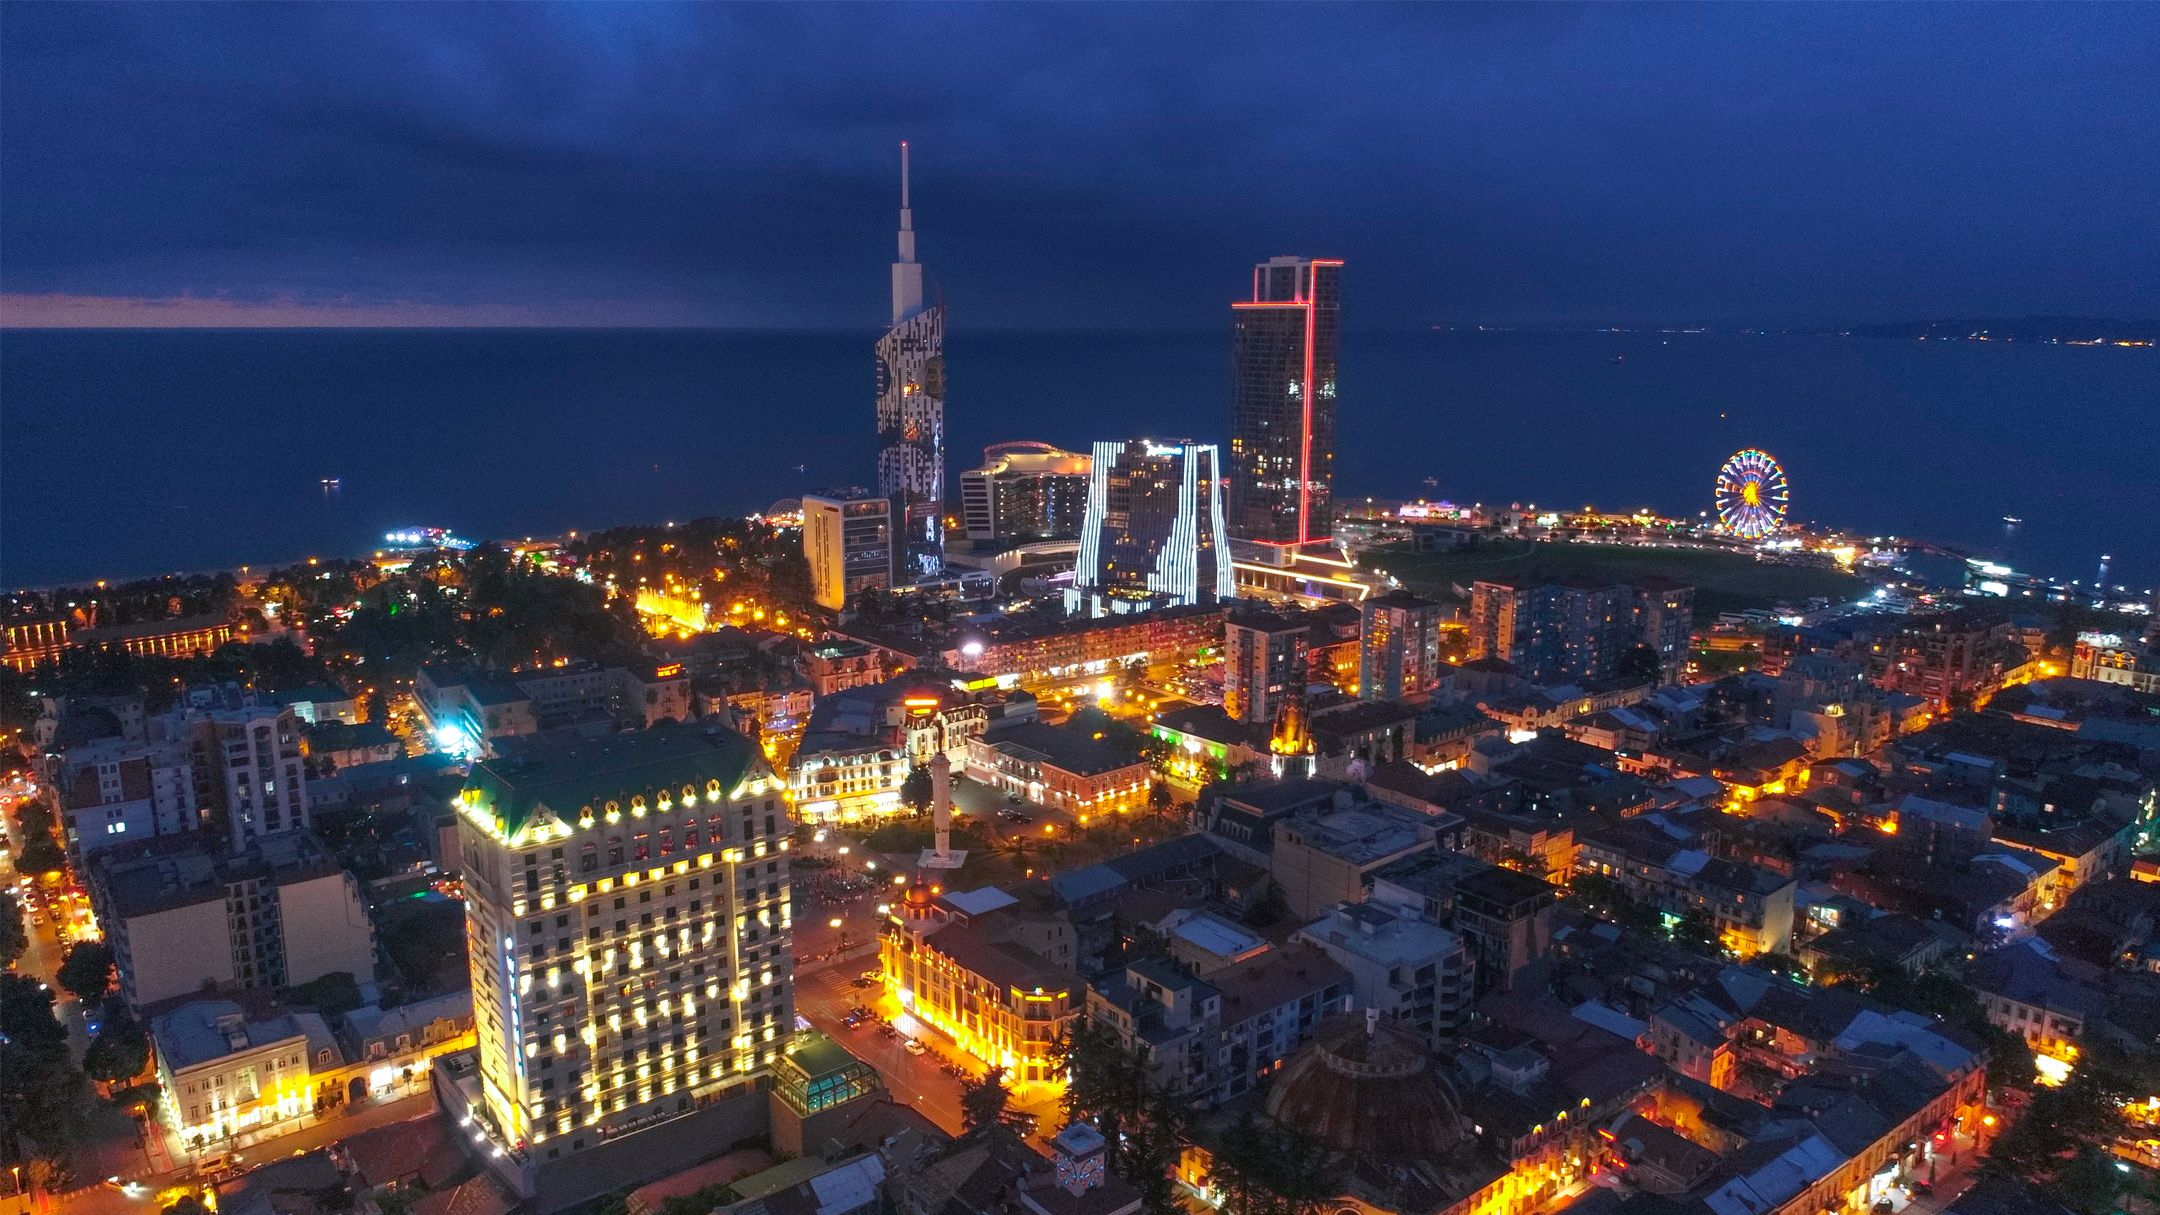 BATUMI NIGHT